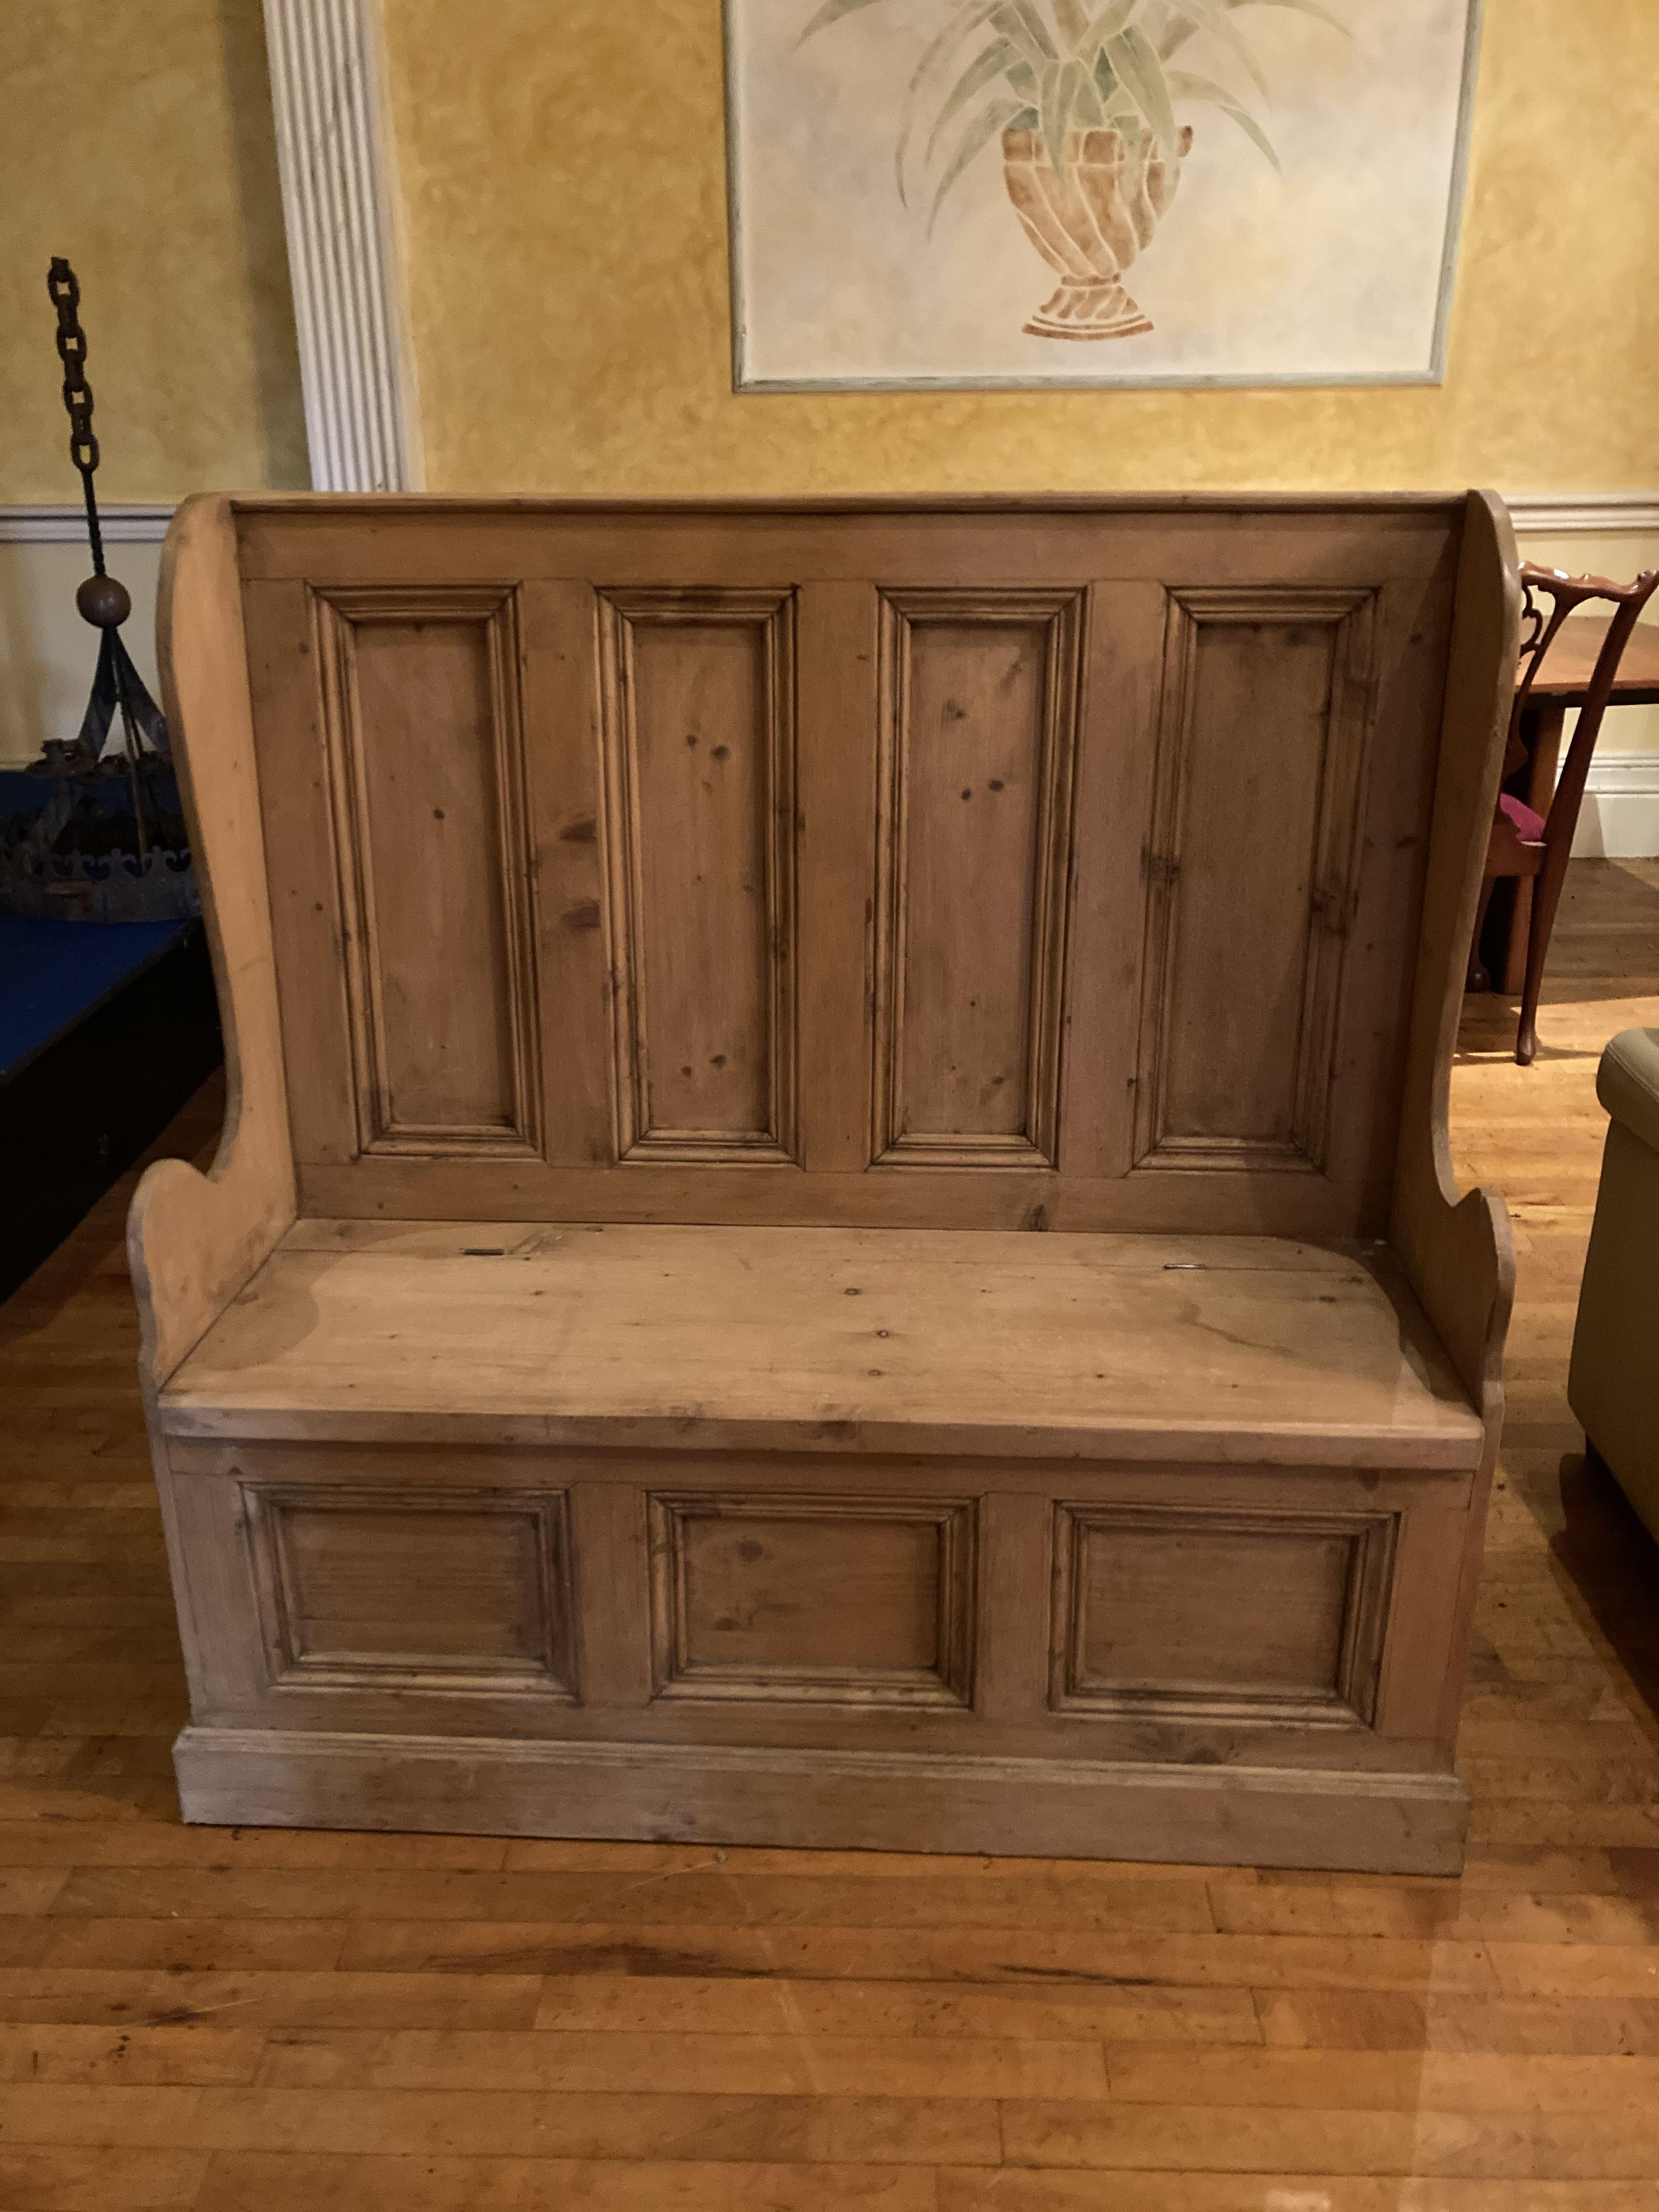 A Victorianstyle wing back pine Settle Bench, with a four panel back above a lift up seat and three